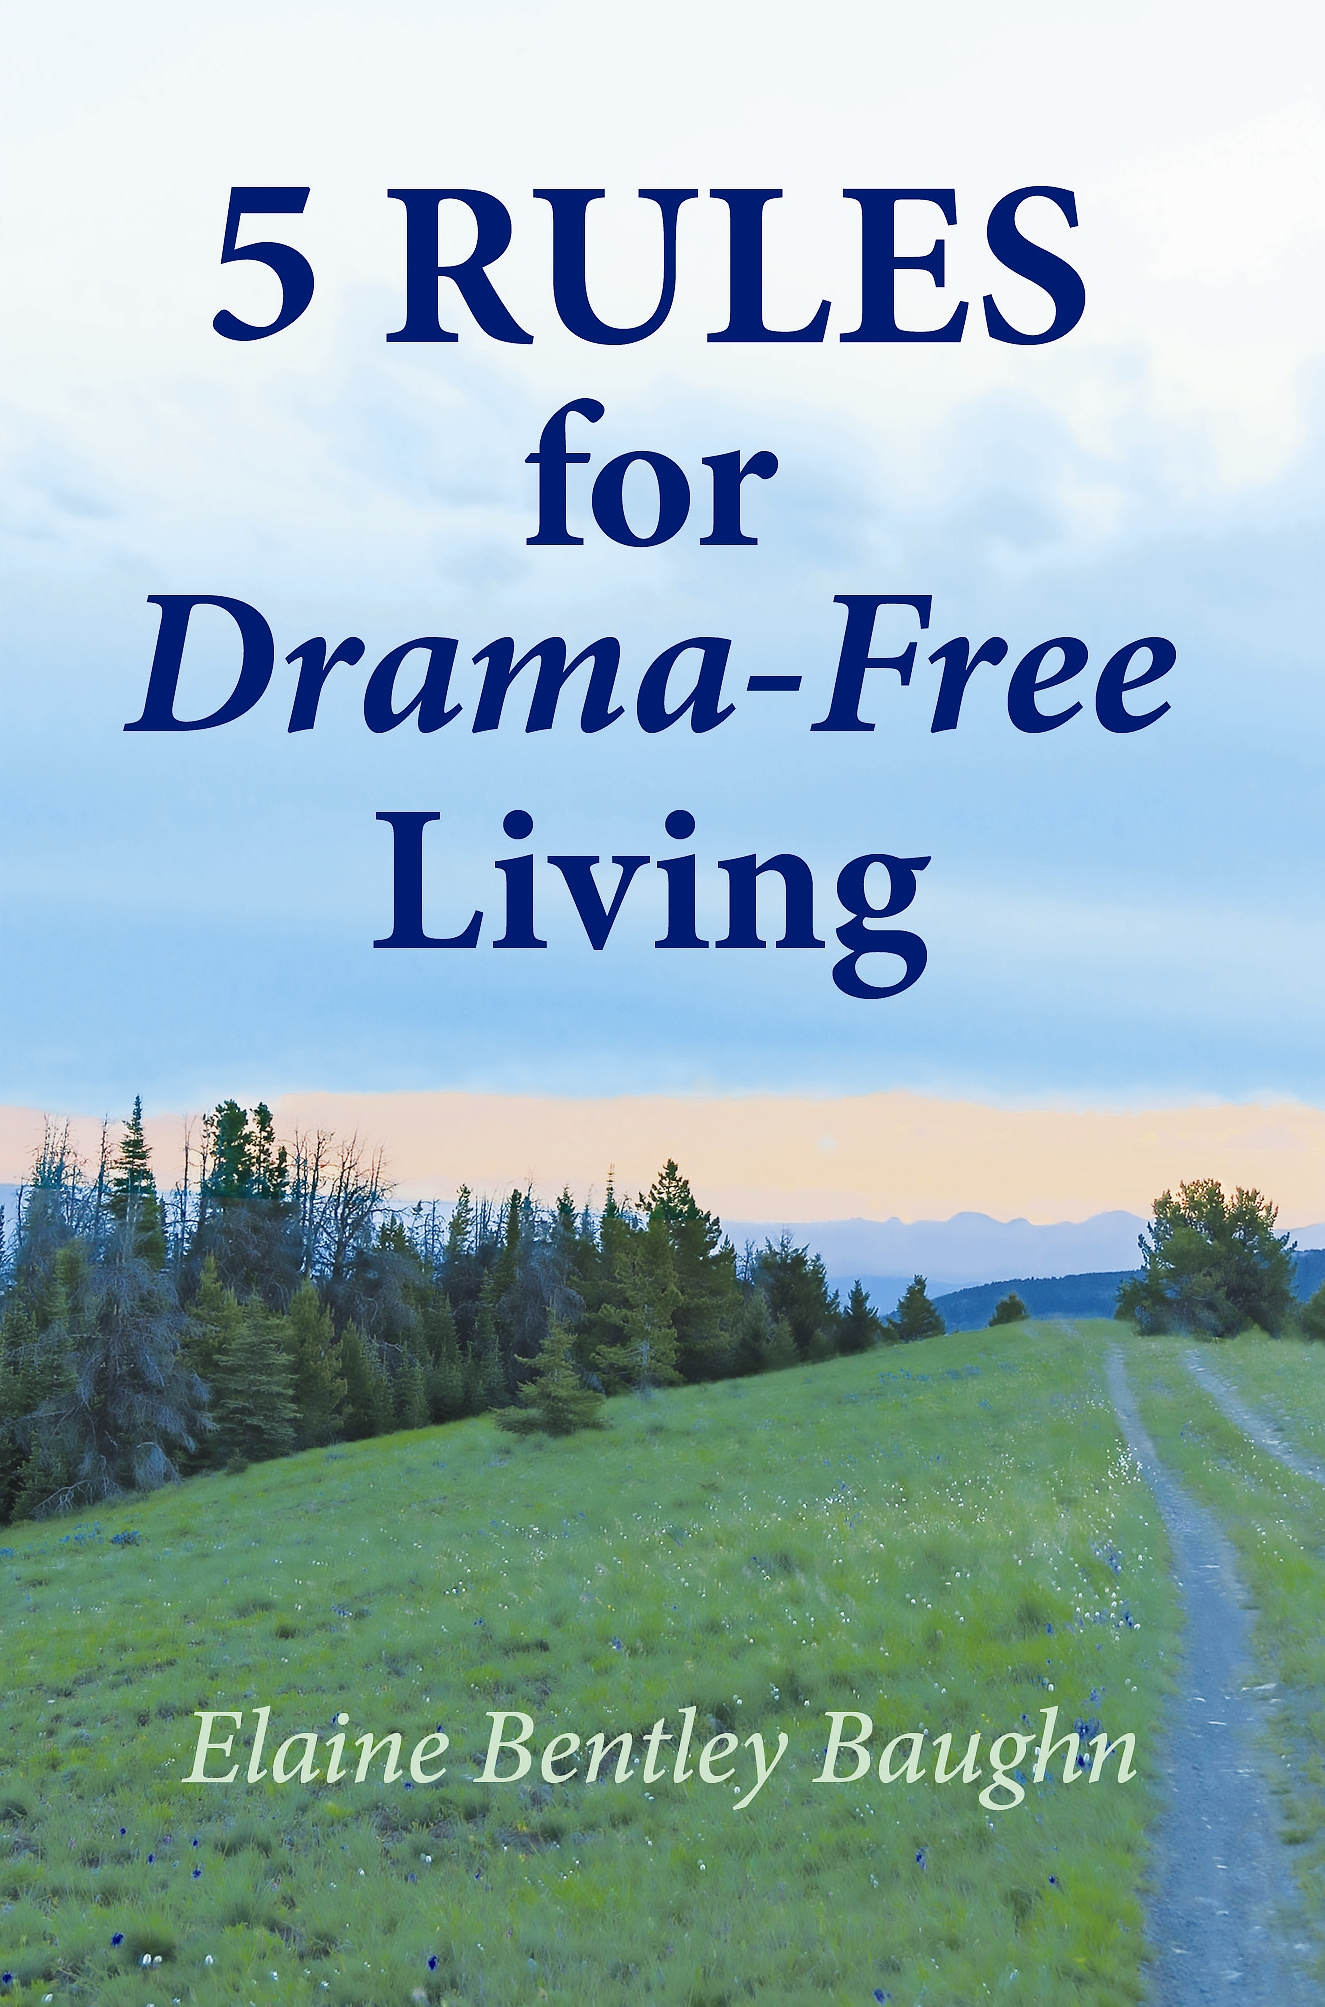 5 Rules For Dramafree Living By Elaine Bentley Baughn